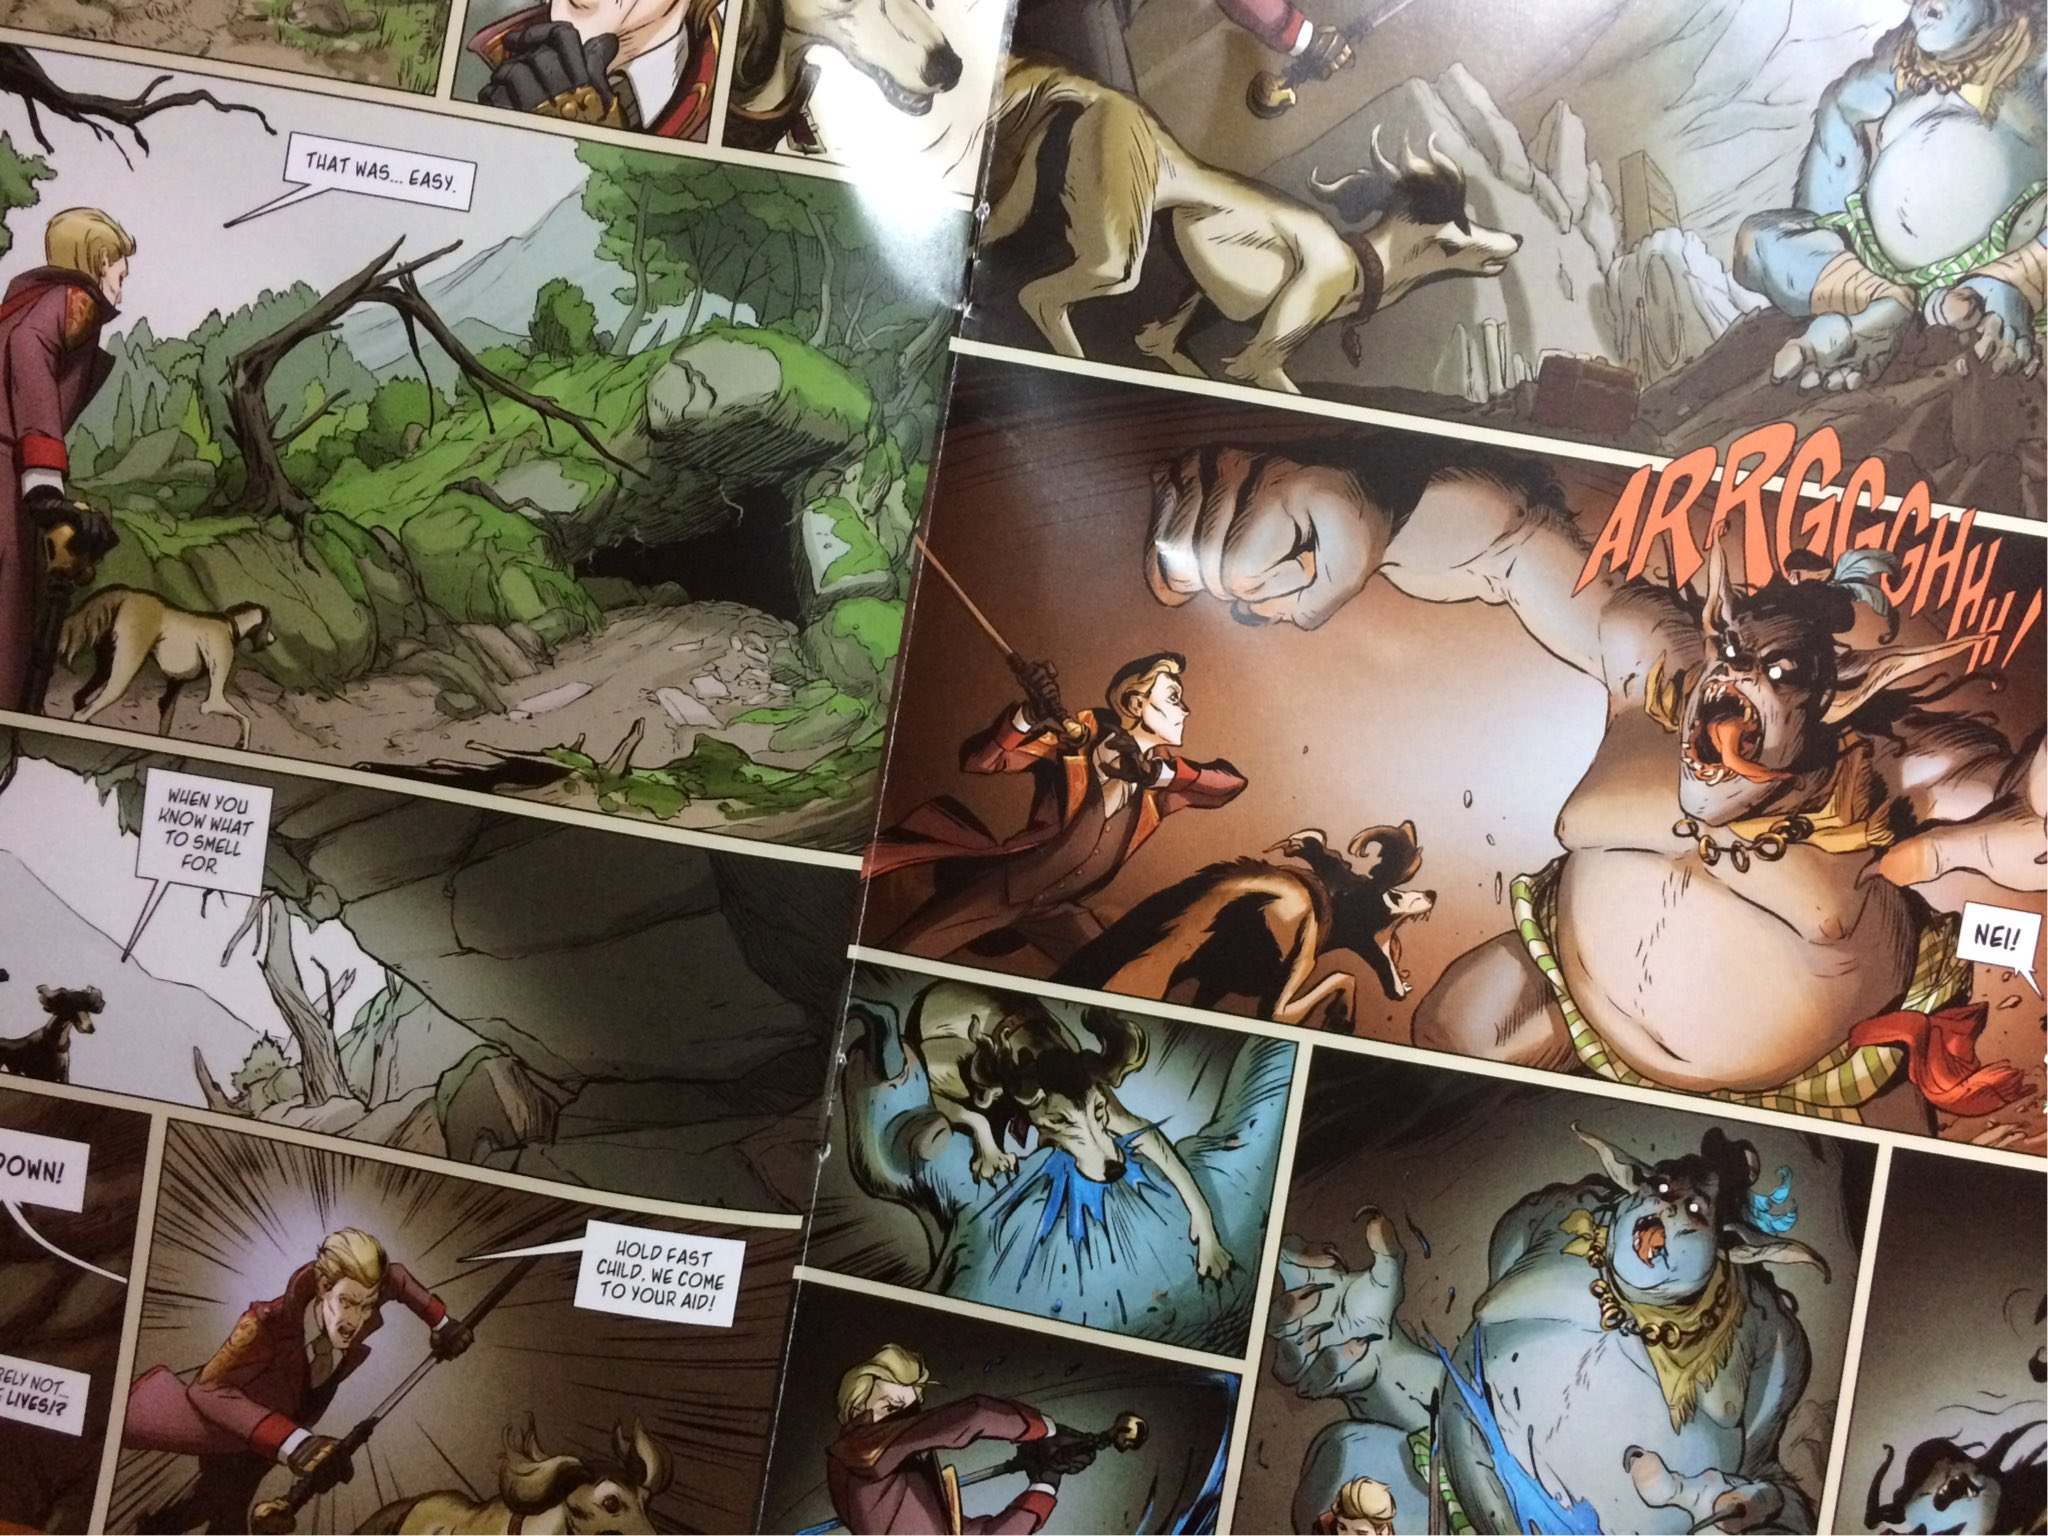 Some pages from The Du Lac and Fey comic which we picked up :)